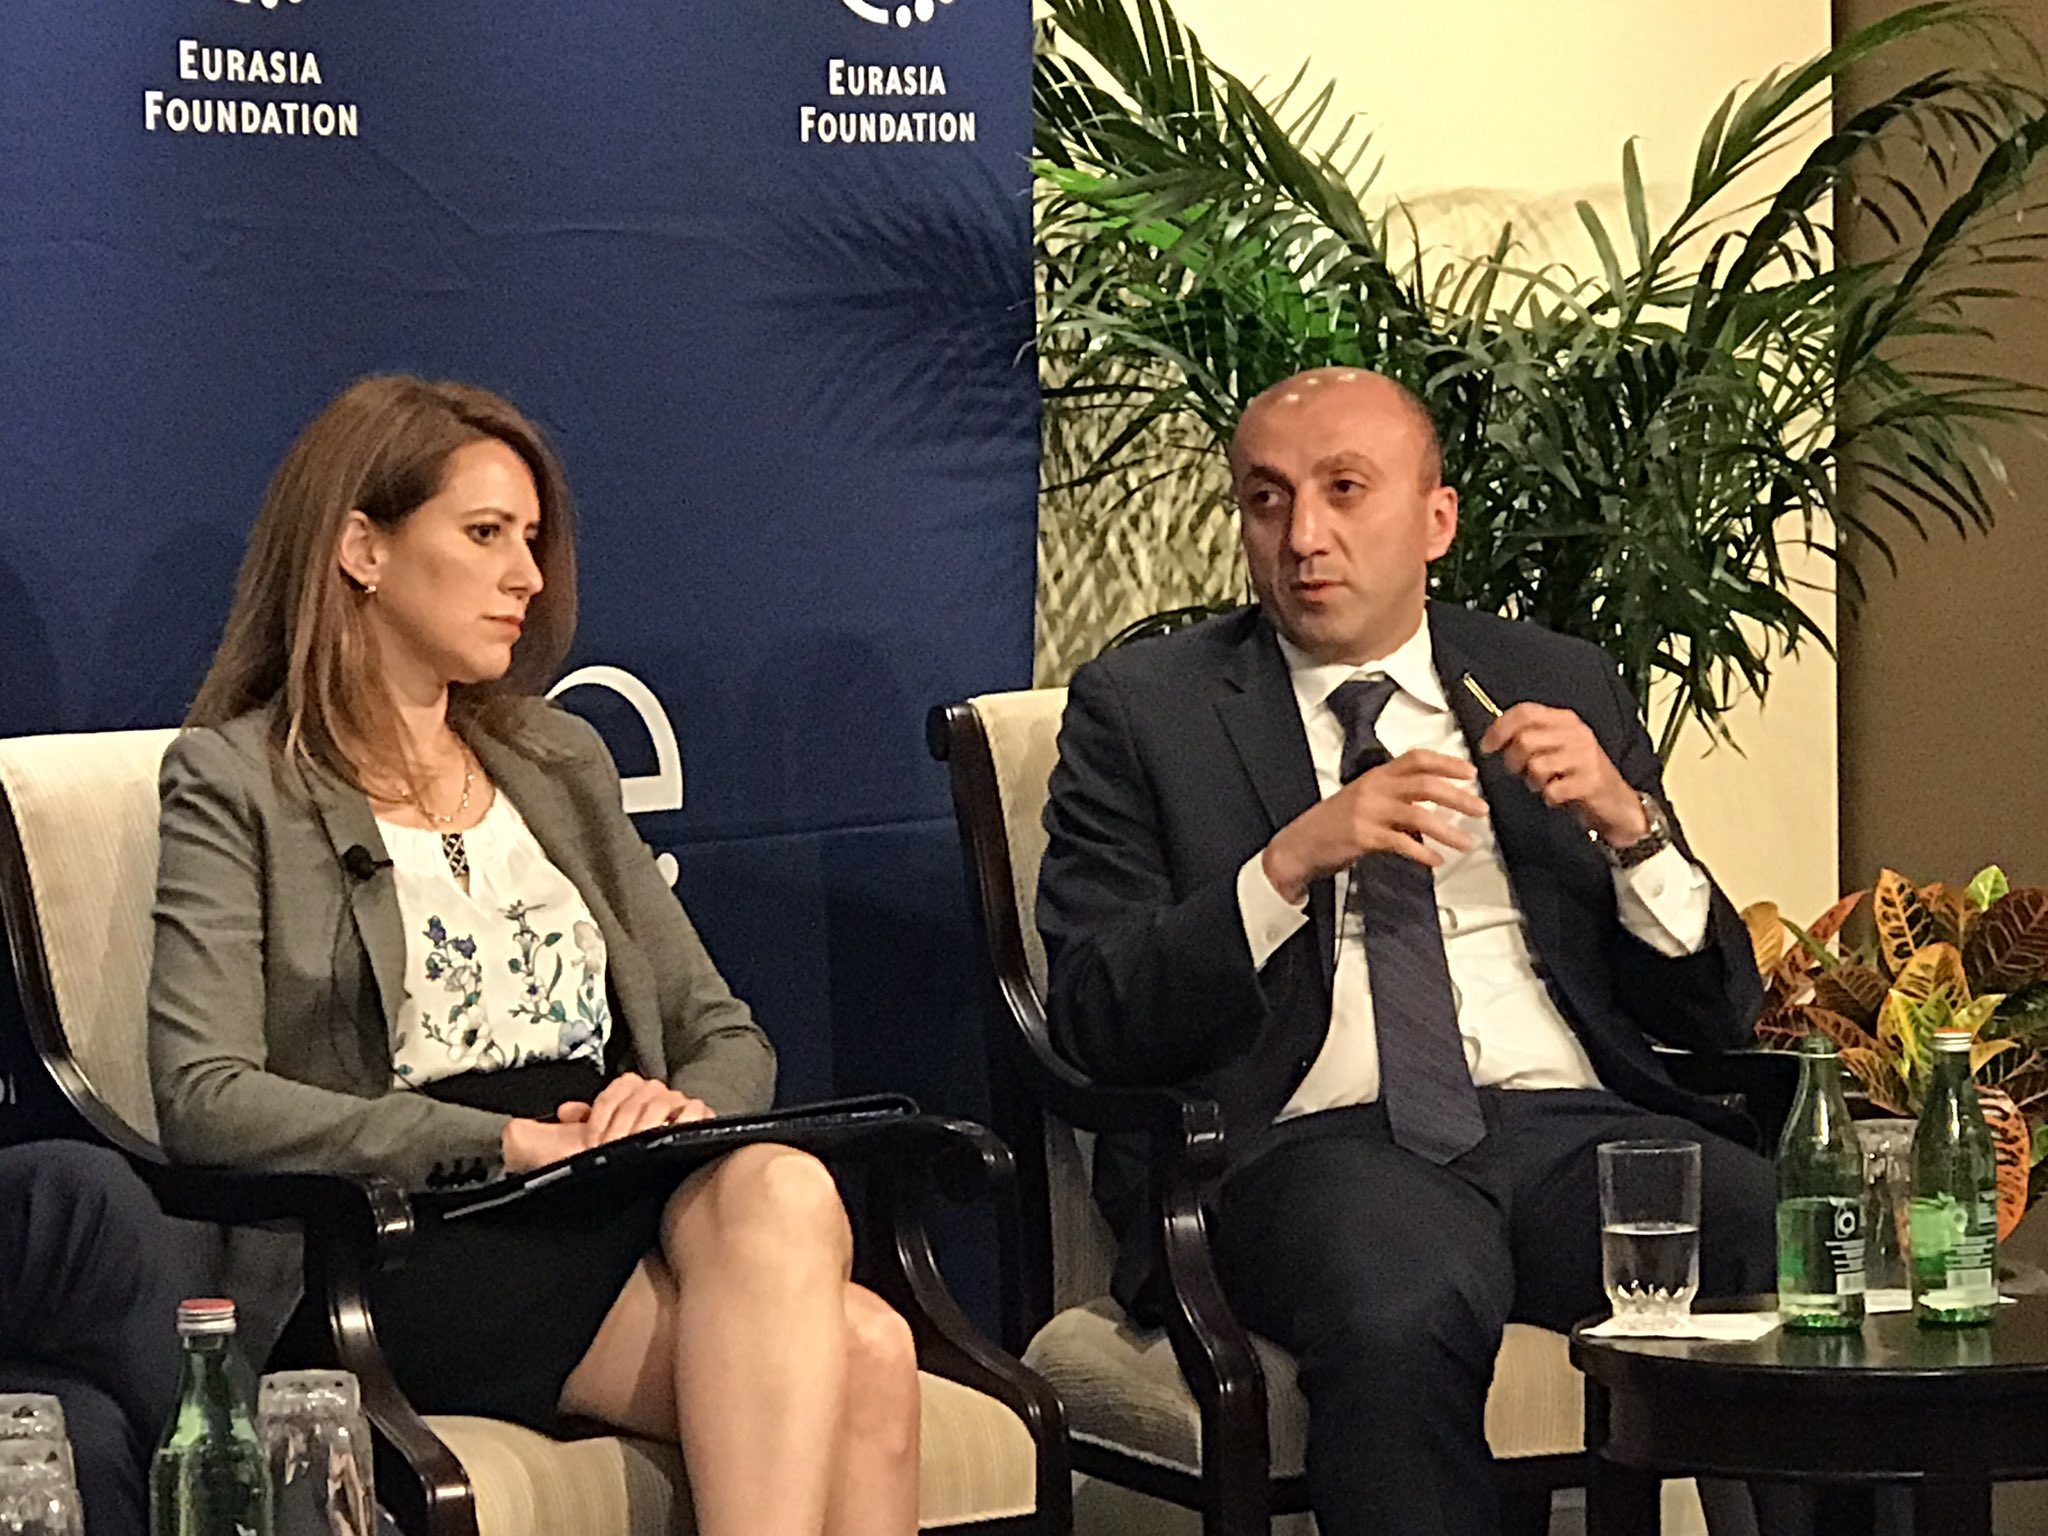 @EFNetwork DCM Tsikolia: As a New Silk Road emerge Georgia will be connecting East&West. More US investment welcomed in Geo free indst zones https://t.co/uHeyeHCBuG